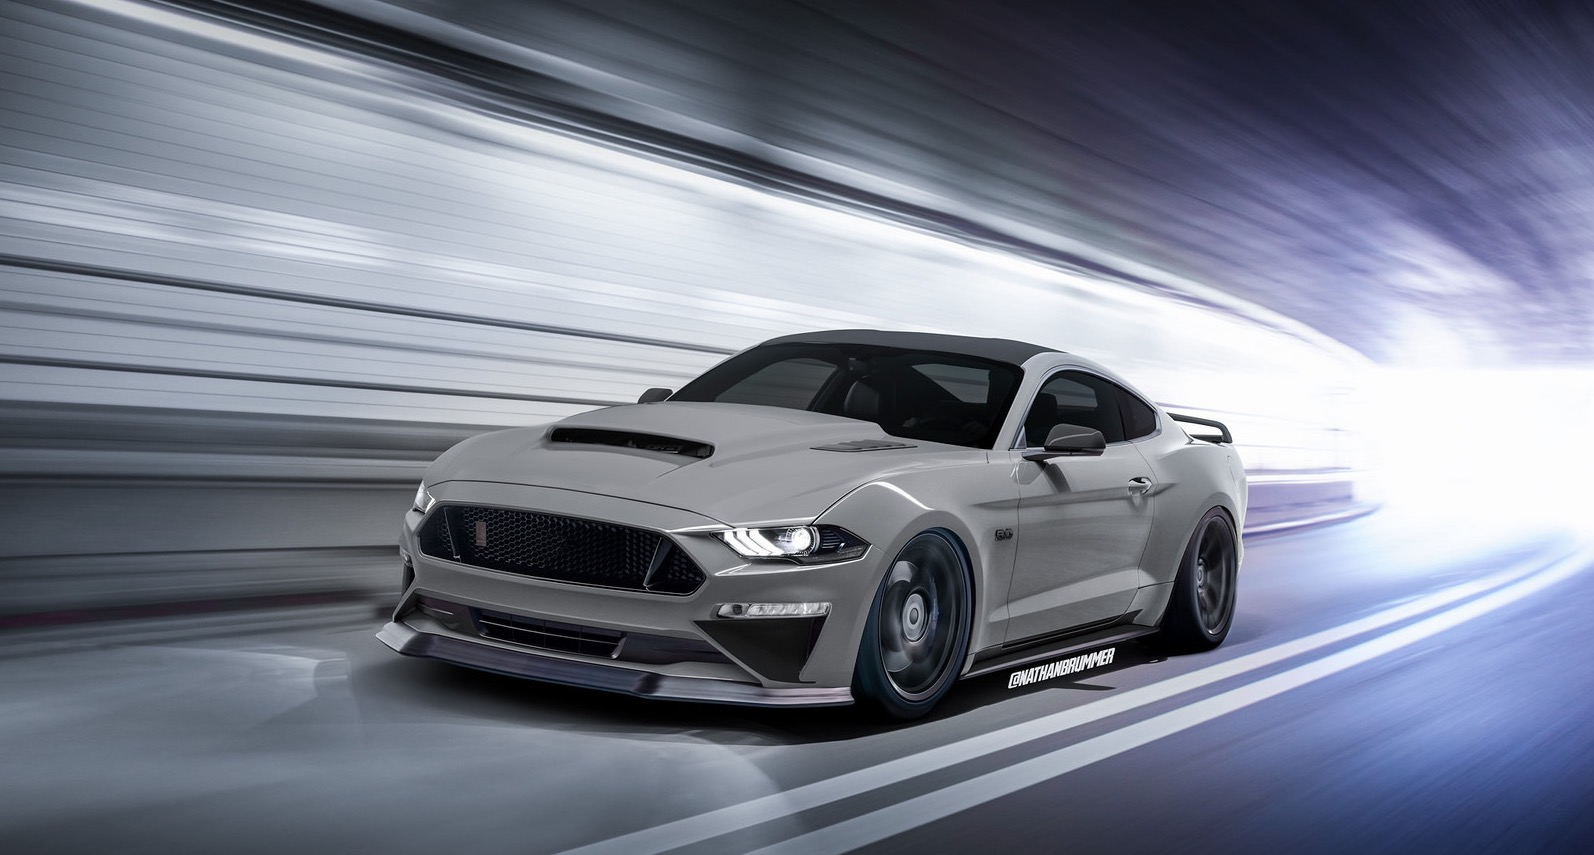 5 photos 2019 shelby gt500 mustang rendering 2019 ford